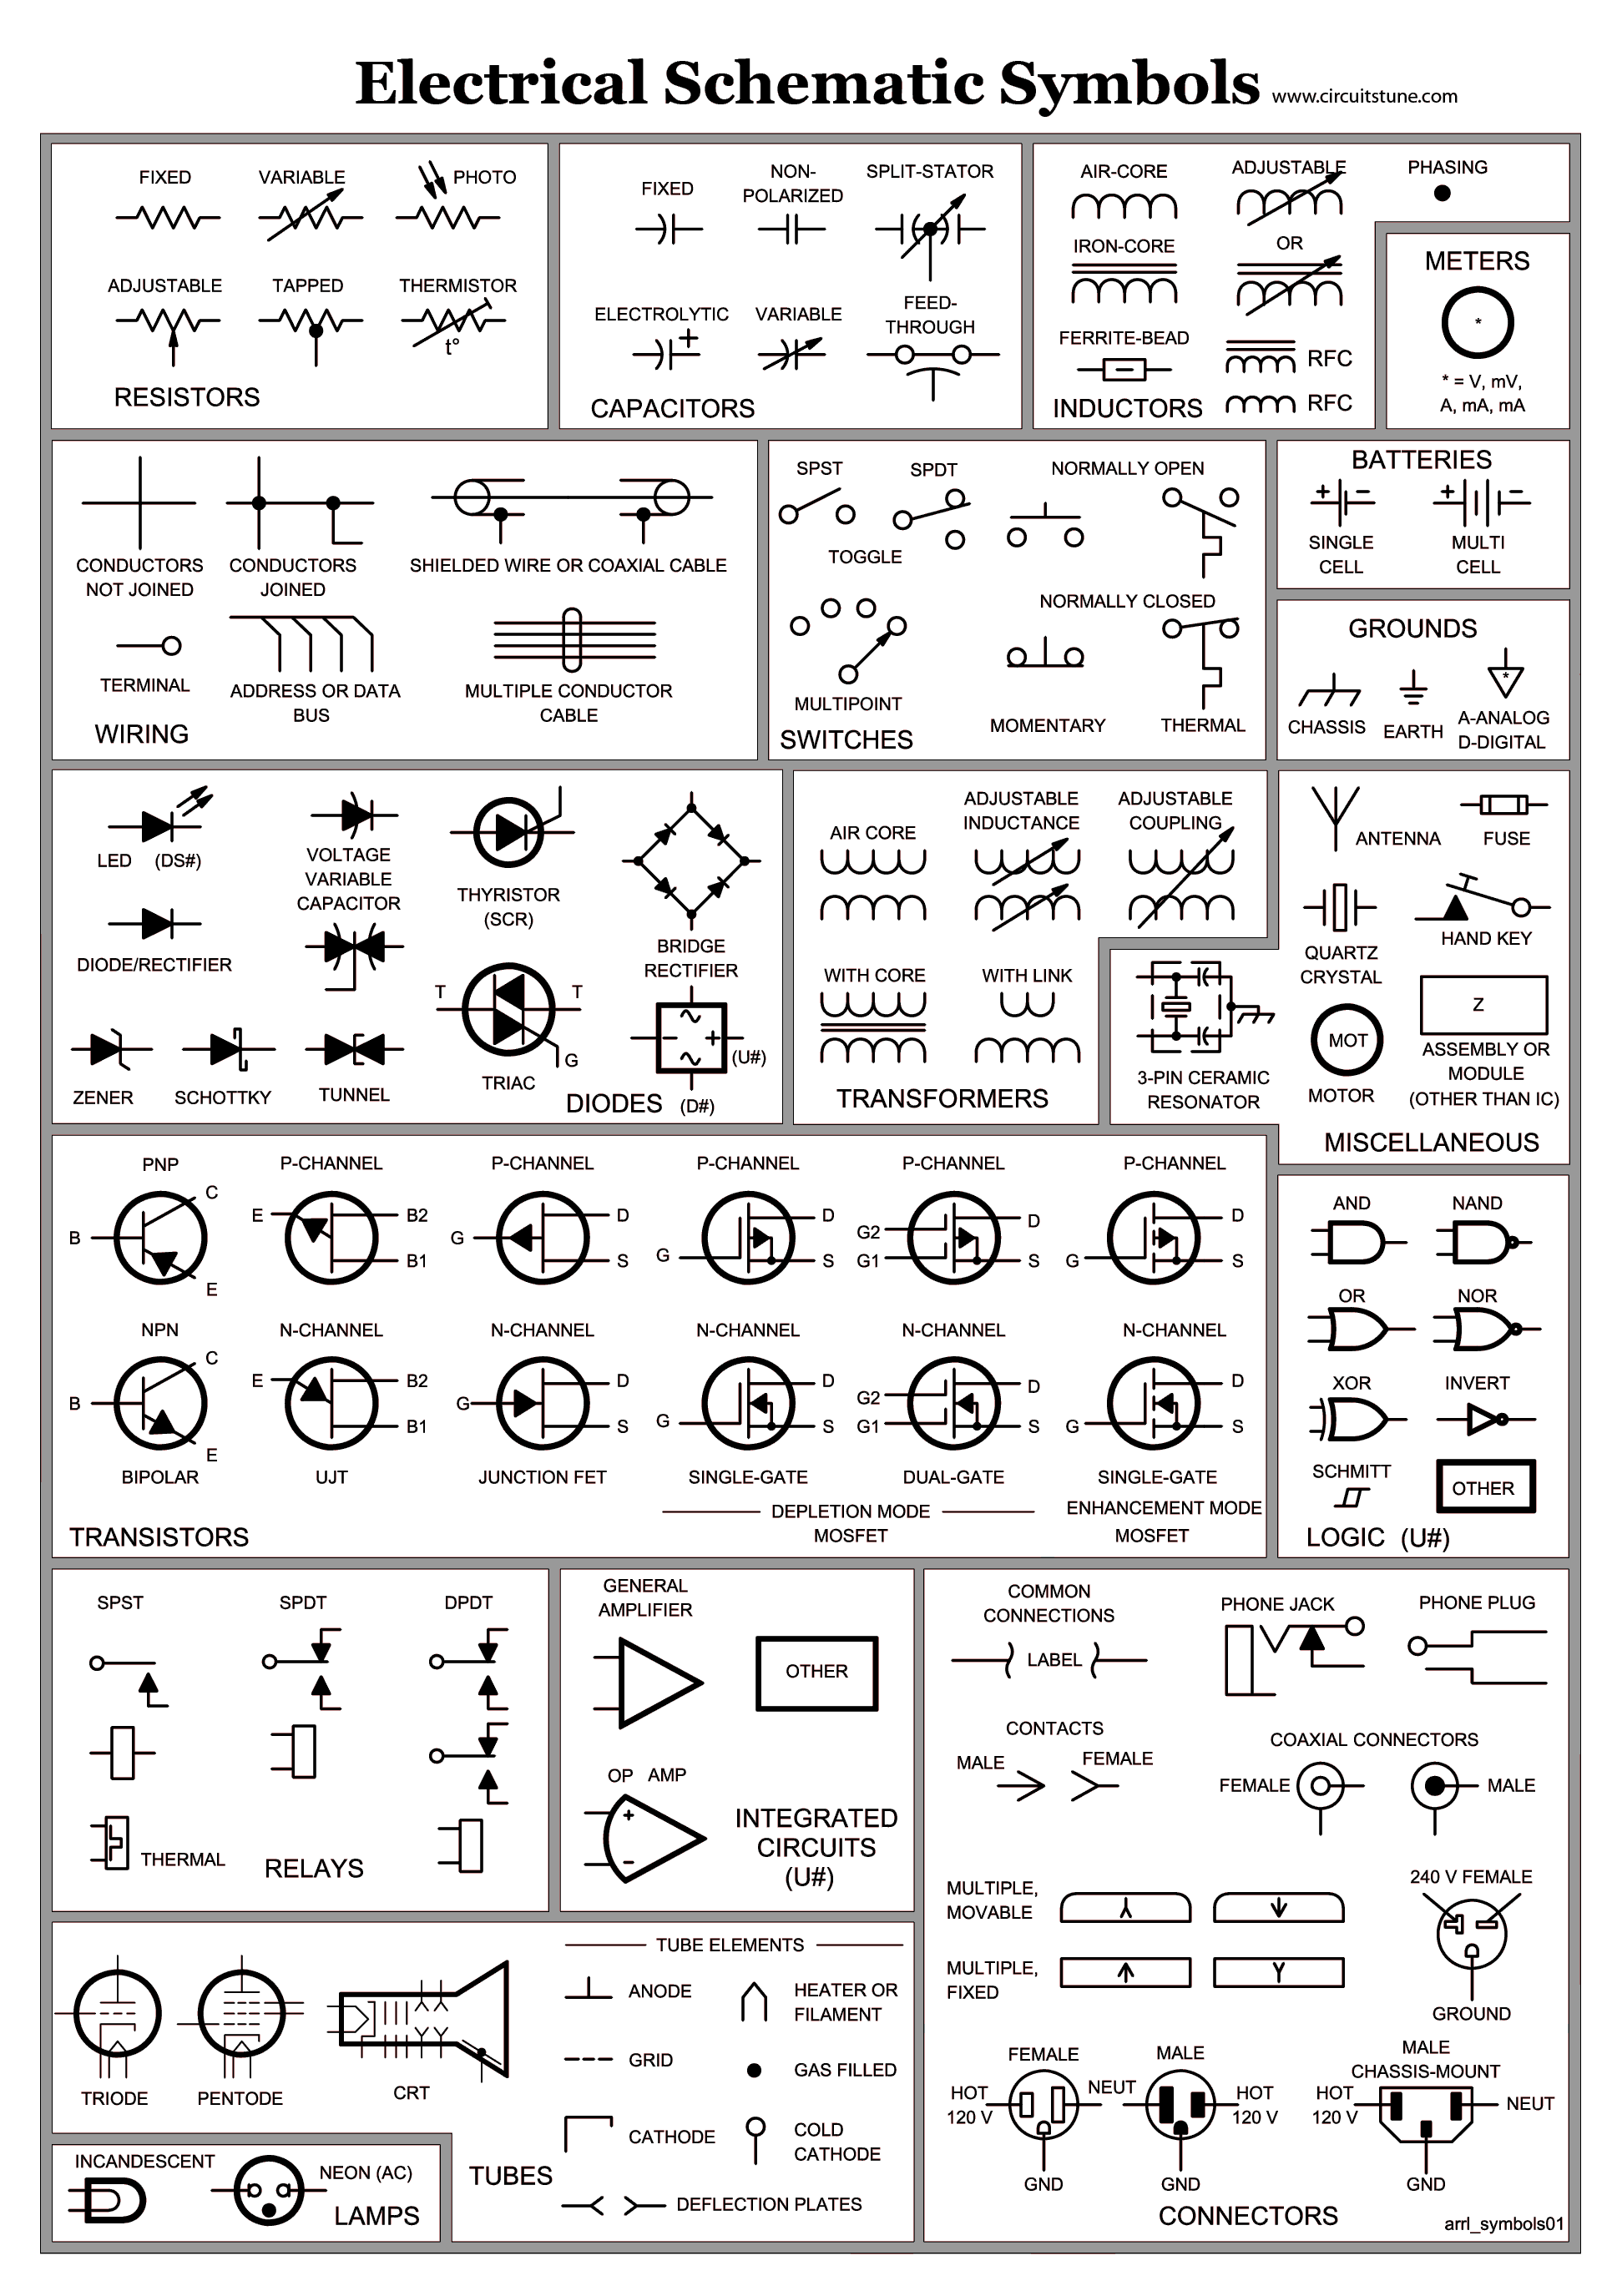 electrical schematic symbols wire diagram symbols automotive wiring rh pinterest com electrical diagrams symbols electrical symbols schematic diagrams